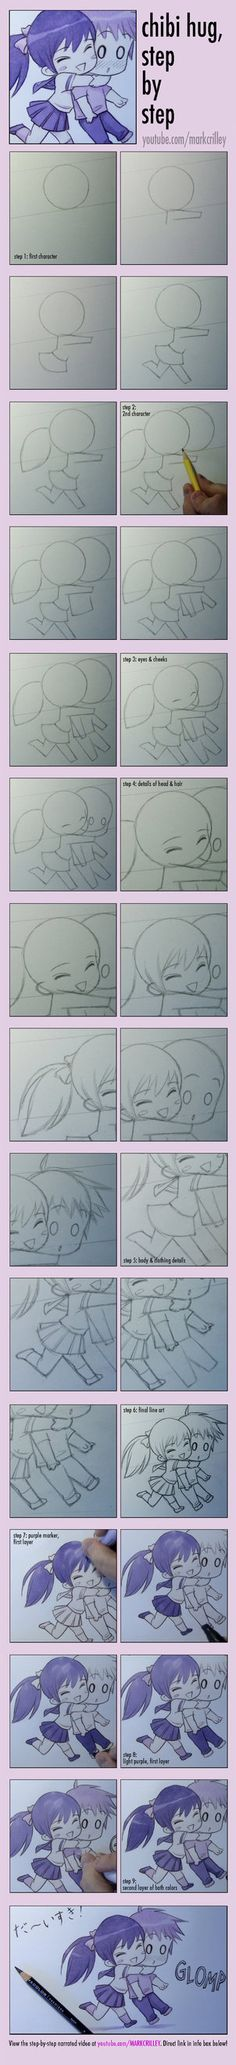 Chibi Hug #art #drawing #Tutorial #lesson